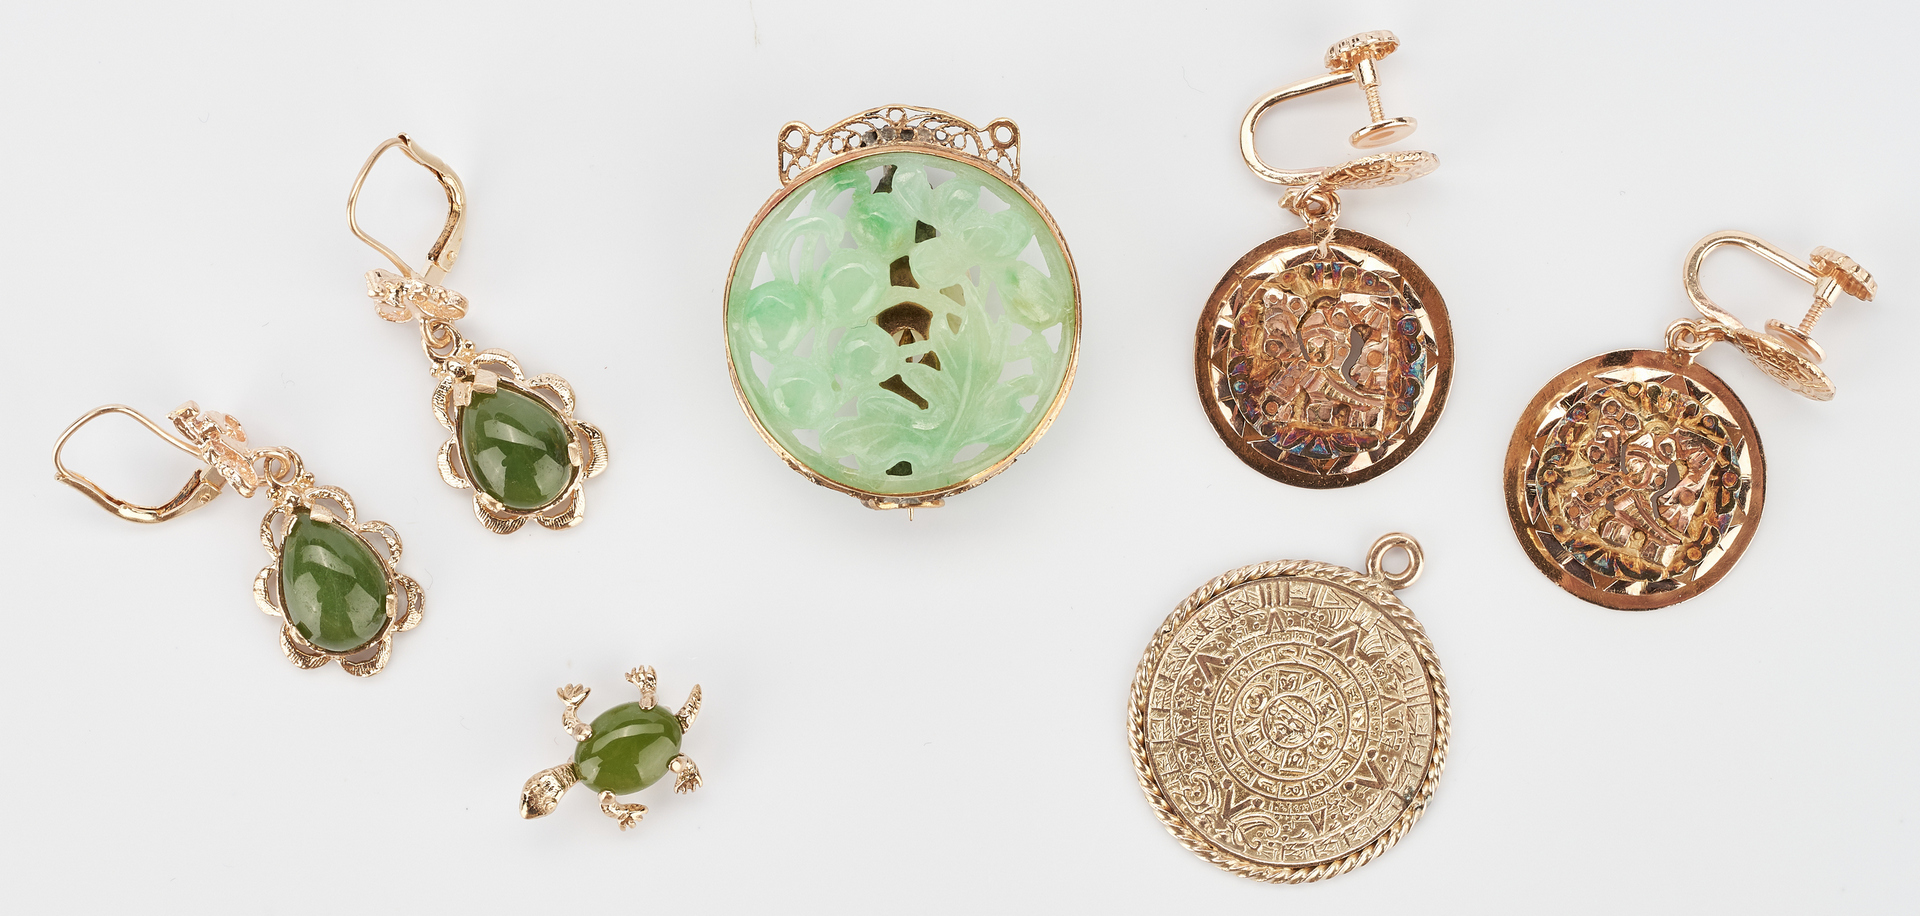 Lot 781: Group of 14K & Jade Jewelry Items, 7 total